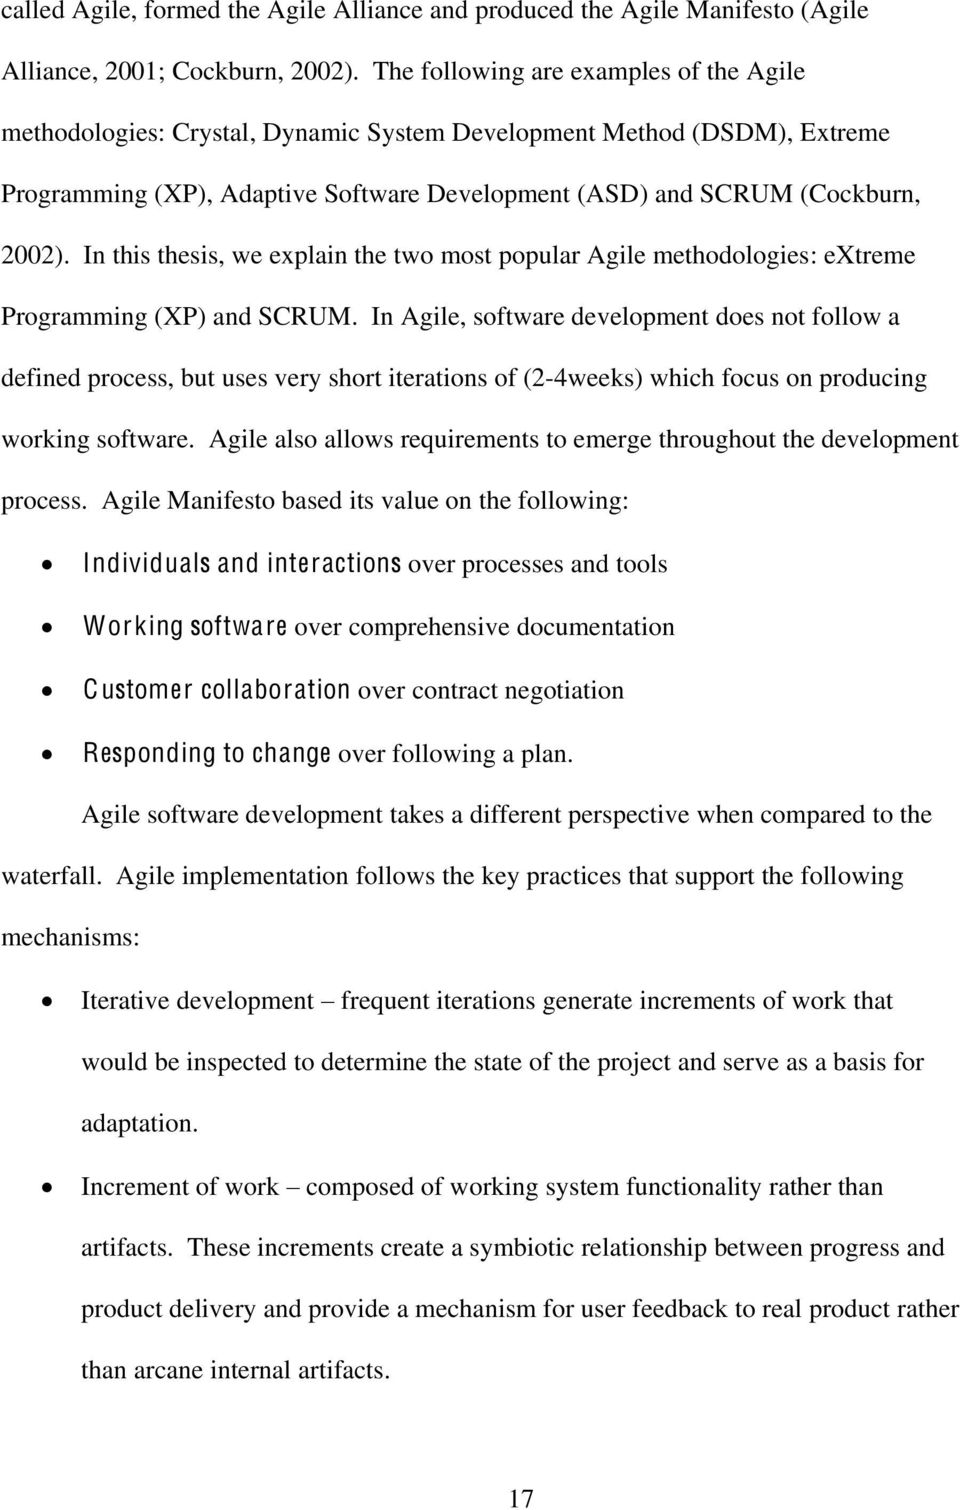 In this thesis, we explain the two most popular Agile methodologies: extreme Programming (XP) and SCRUM.